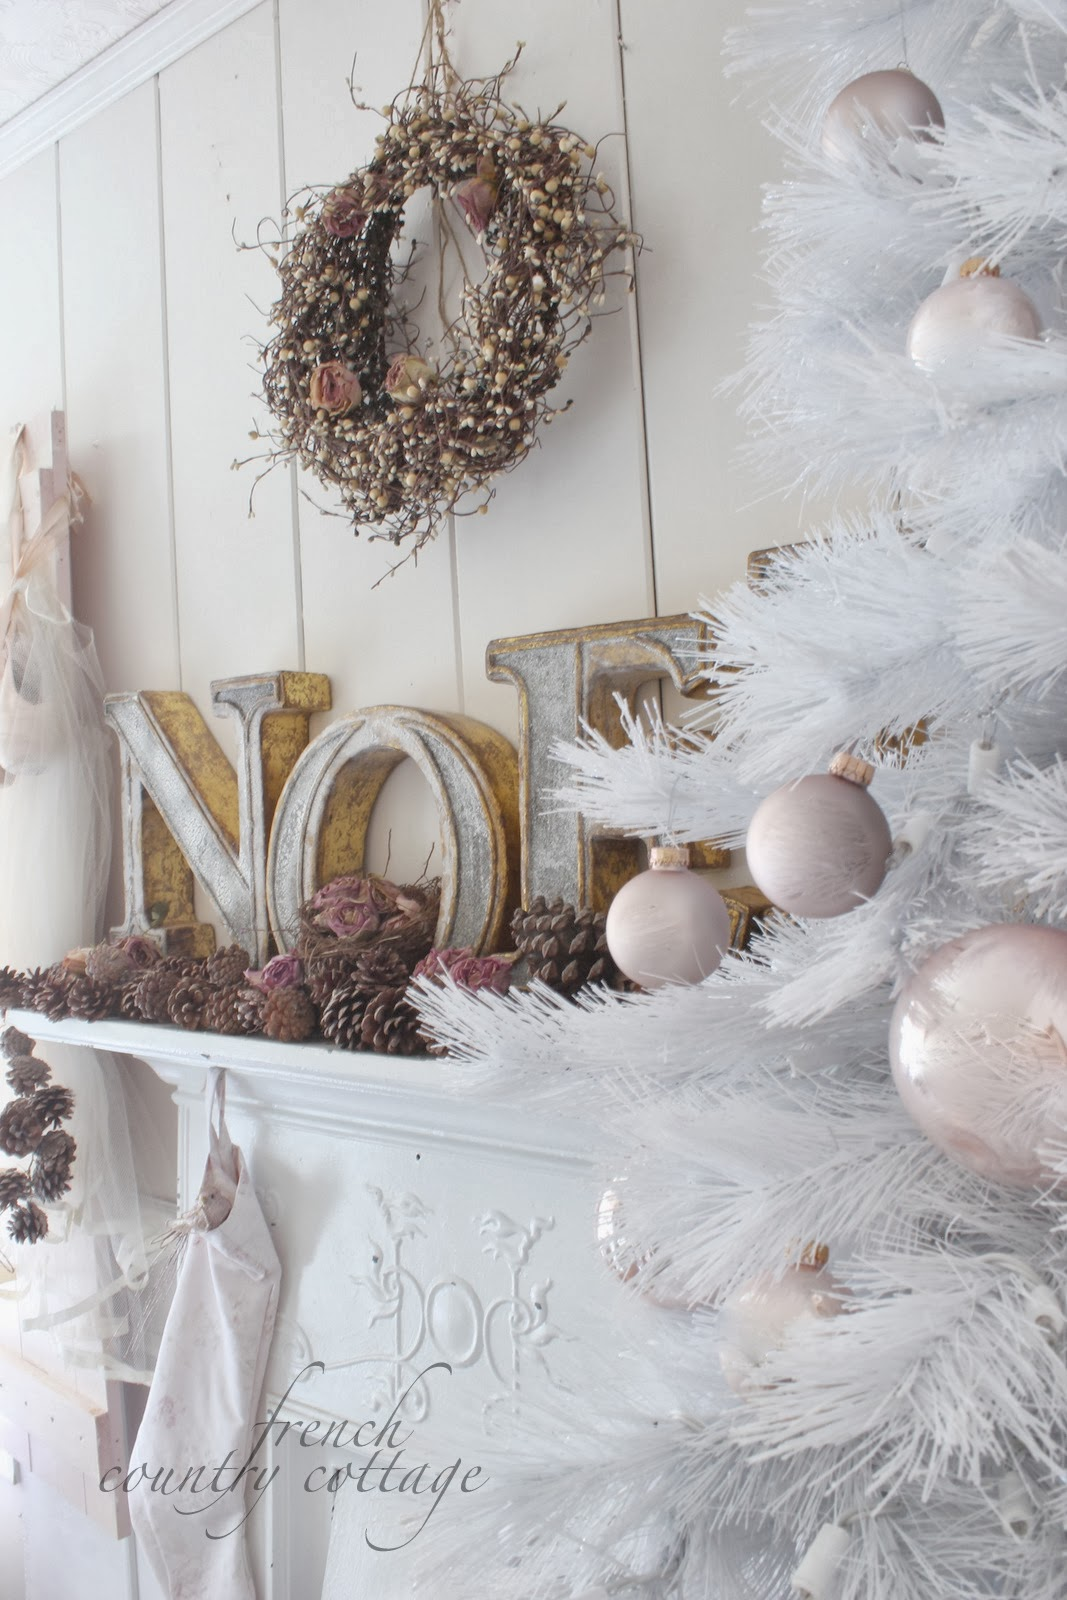 Christmas office diy romantic wreath french country for French country cottage decorating ideas